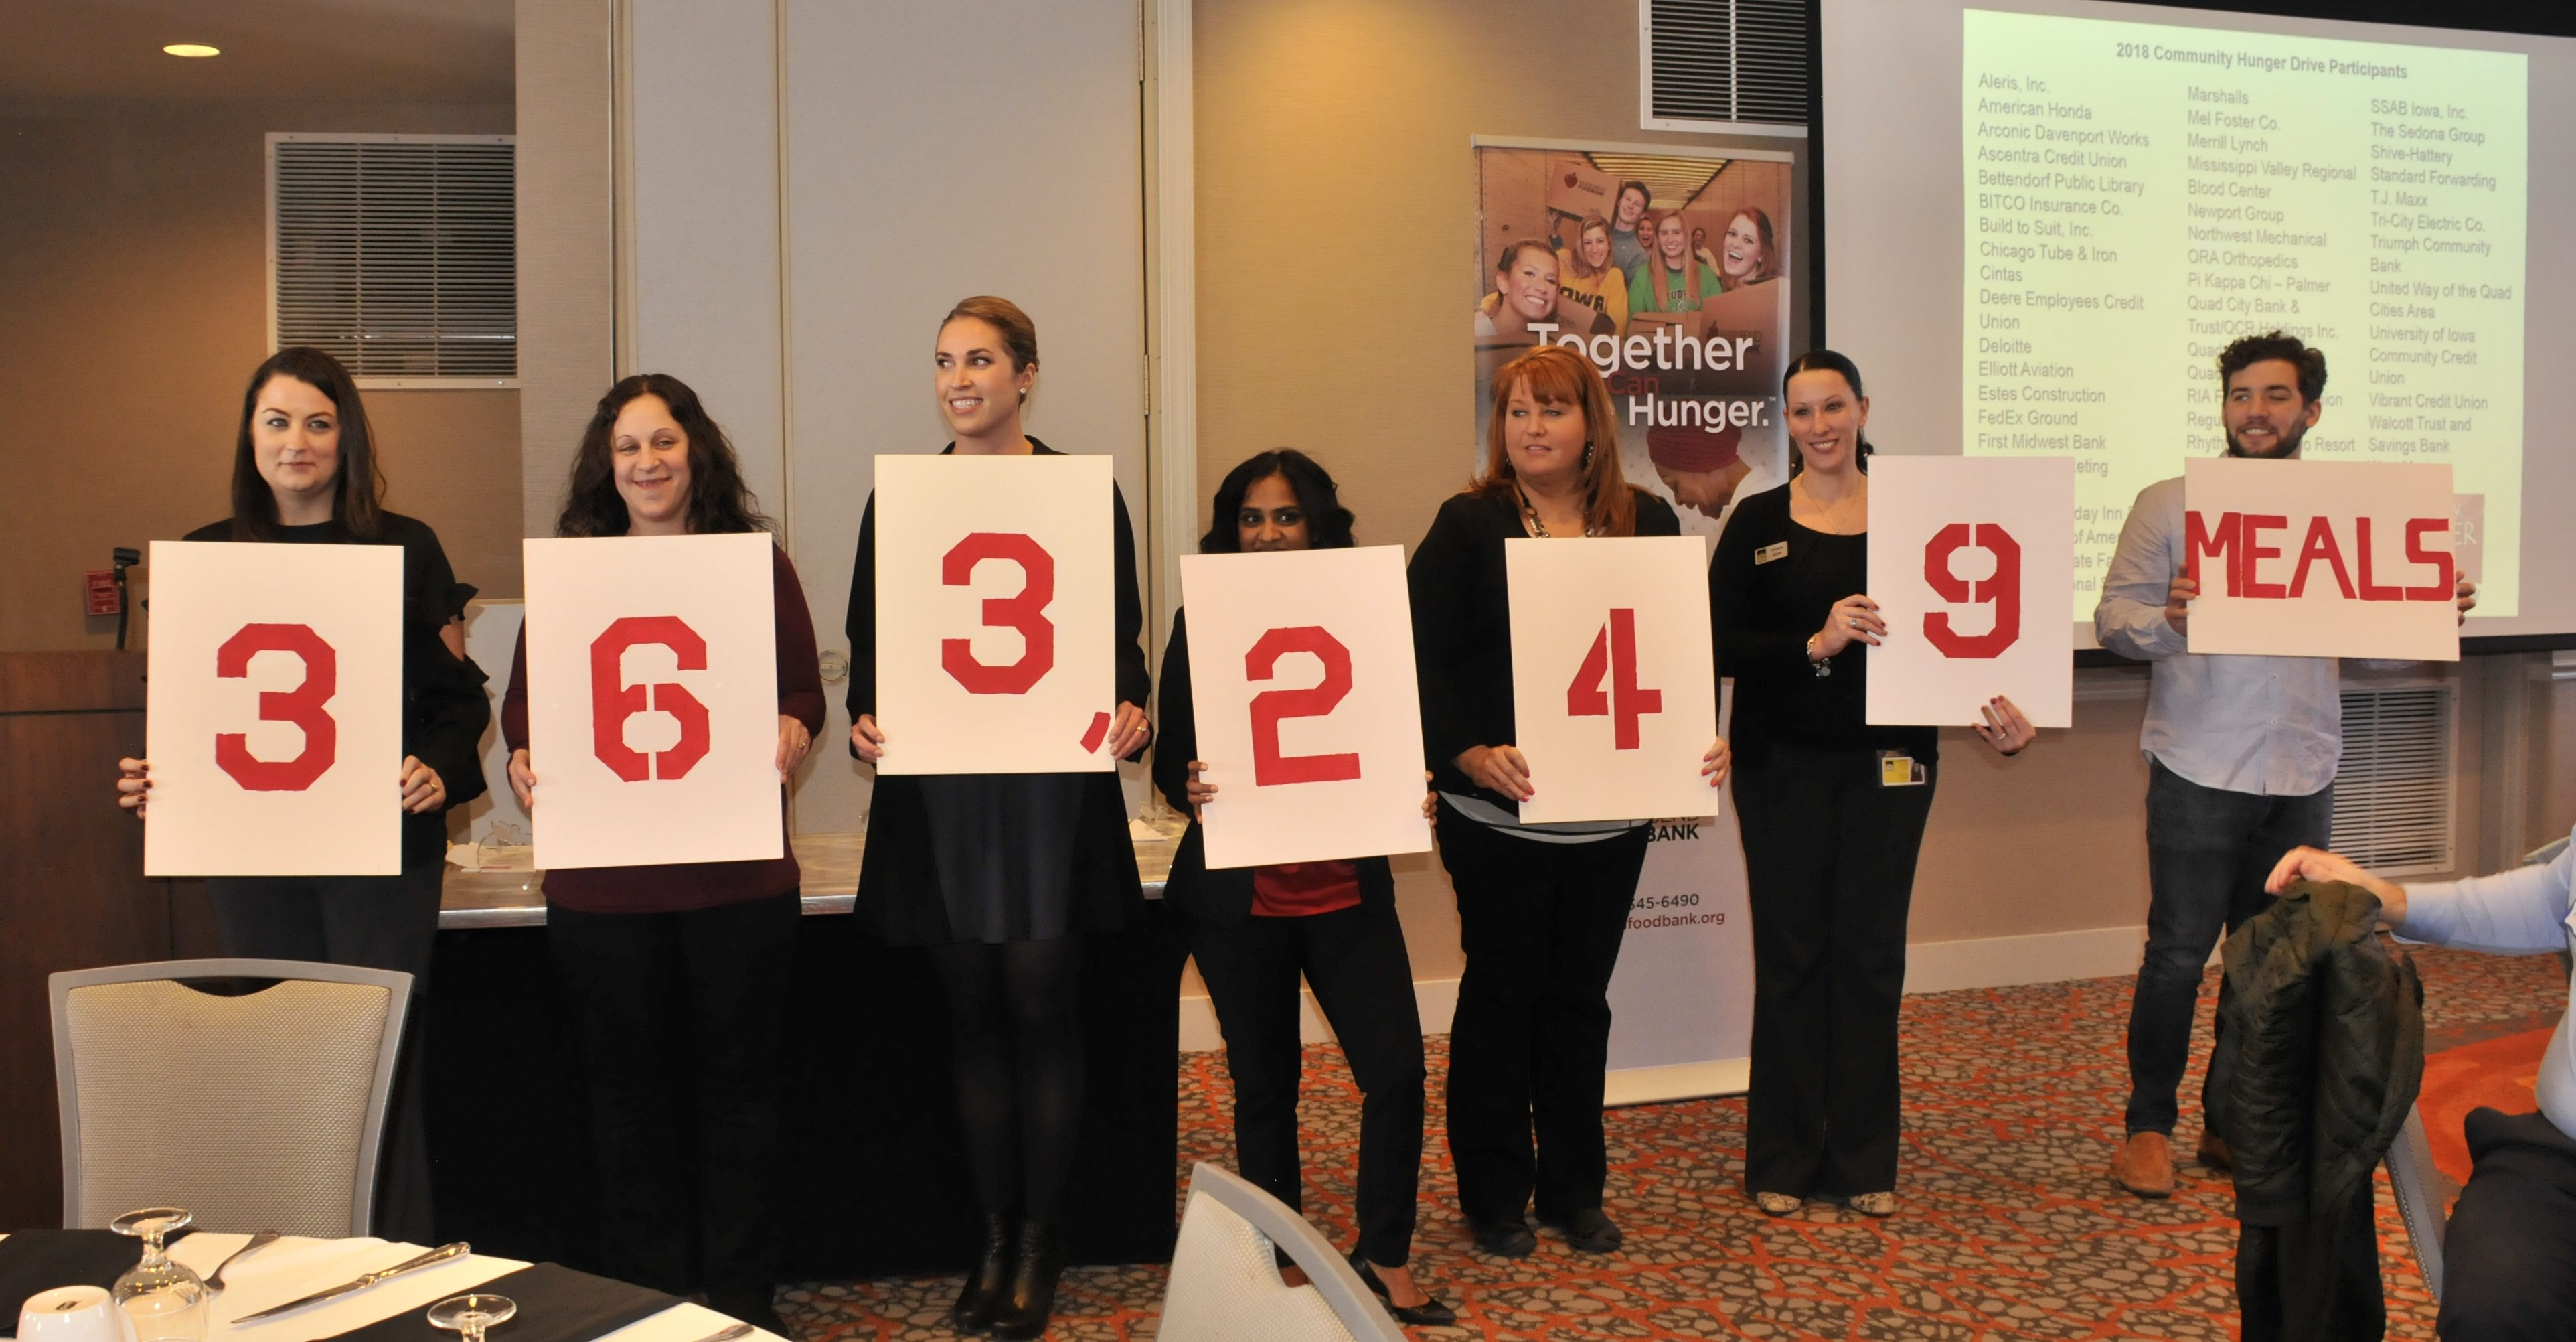 The Community Hunger Drive raises 363,249 meals for River Bend Foodbank